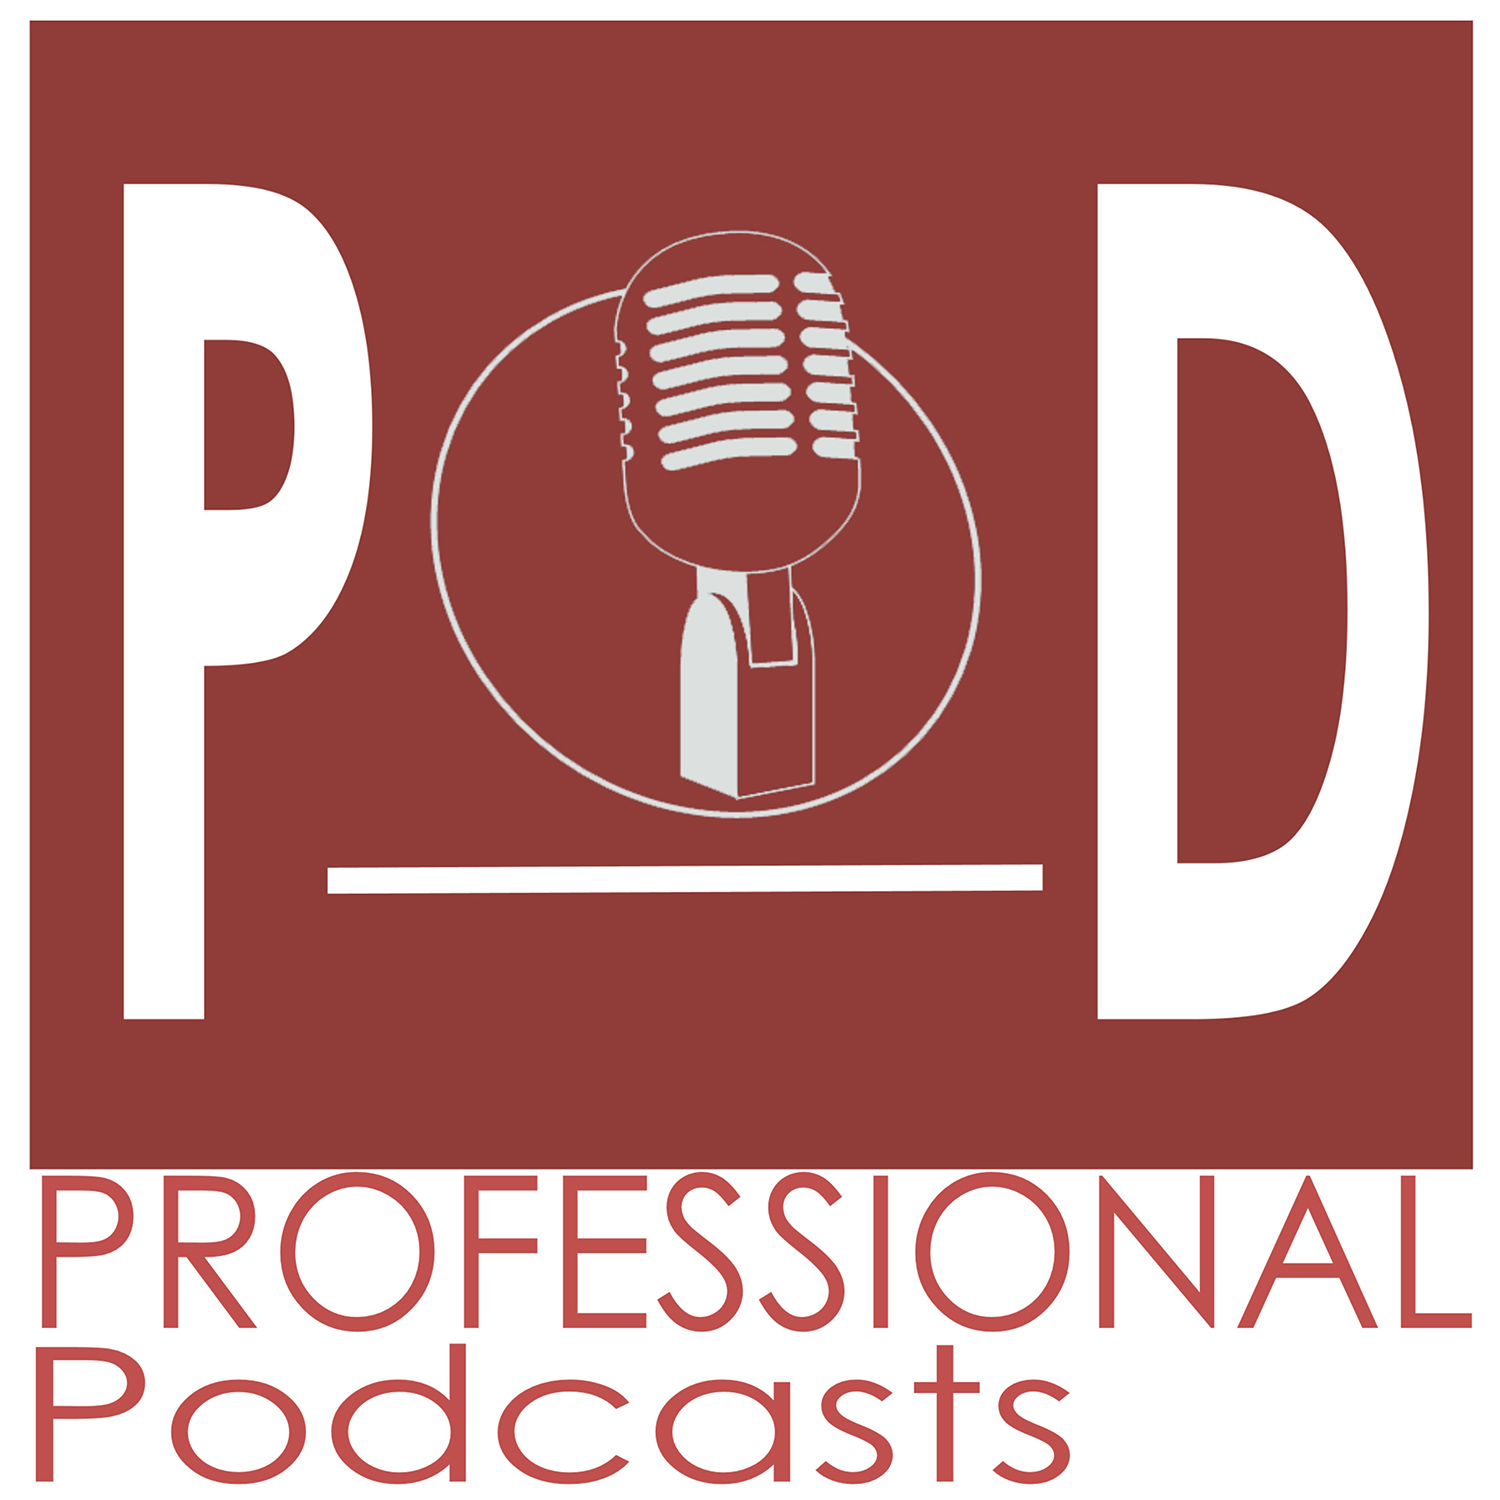 02-Professional Podcasts New Logo 1500×1500